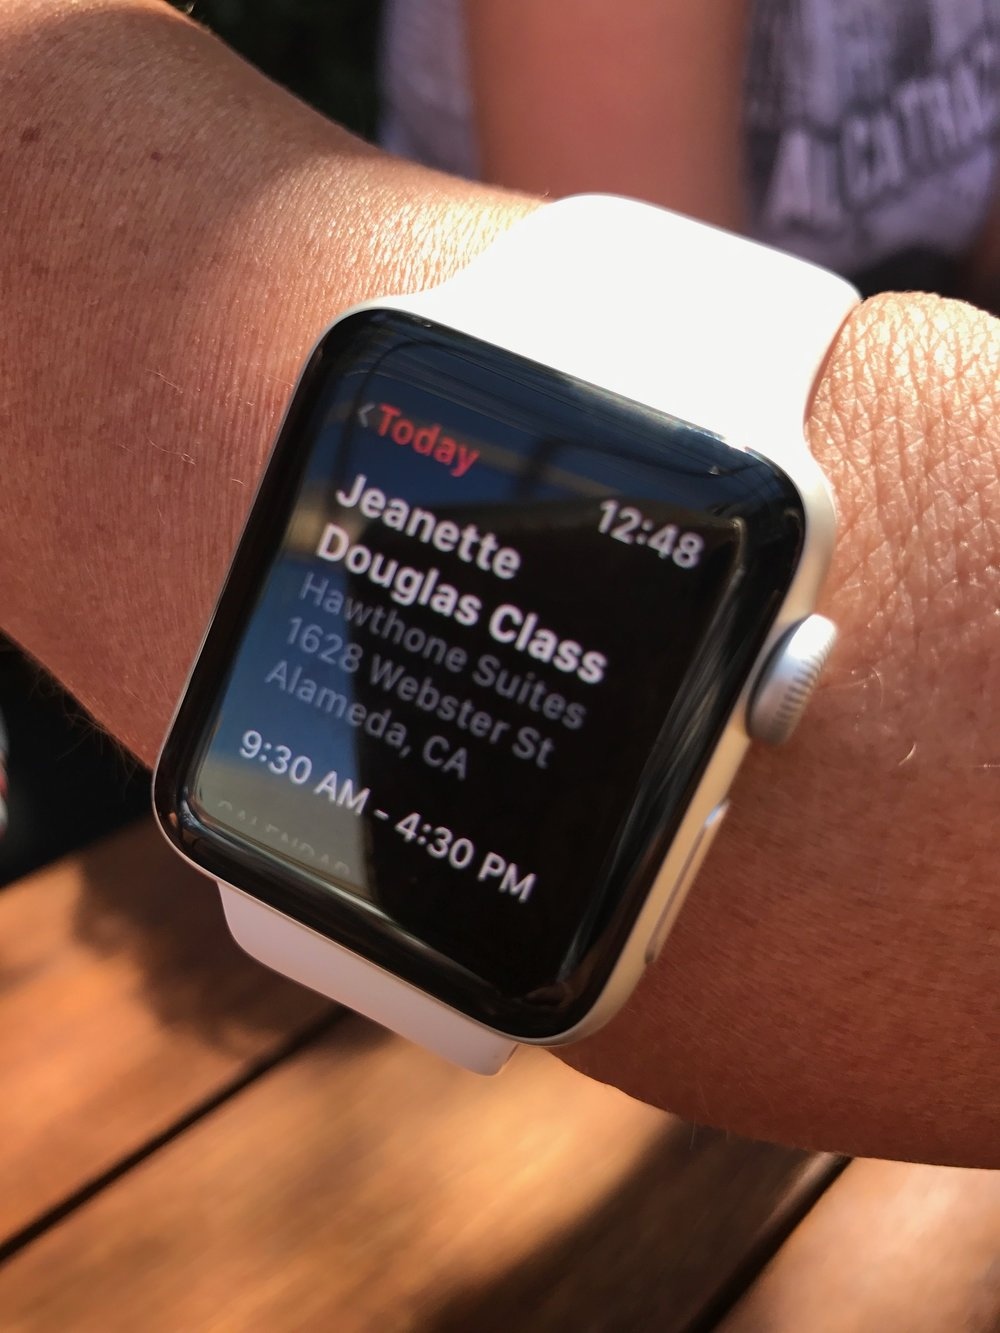 A notification on an attendees watch! Fun!